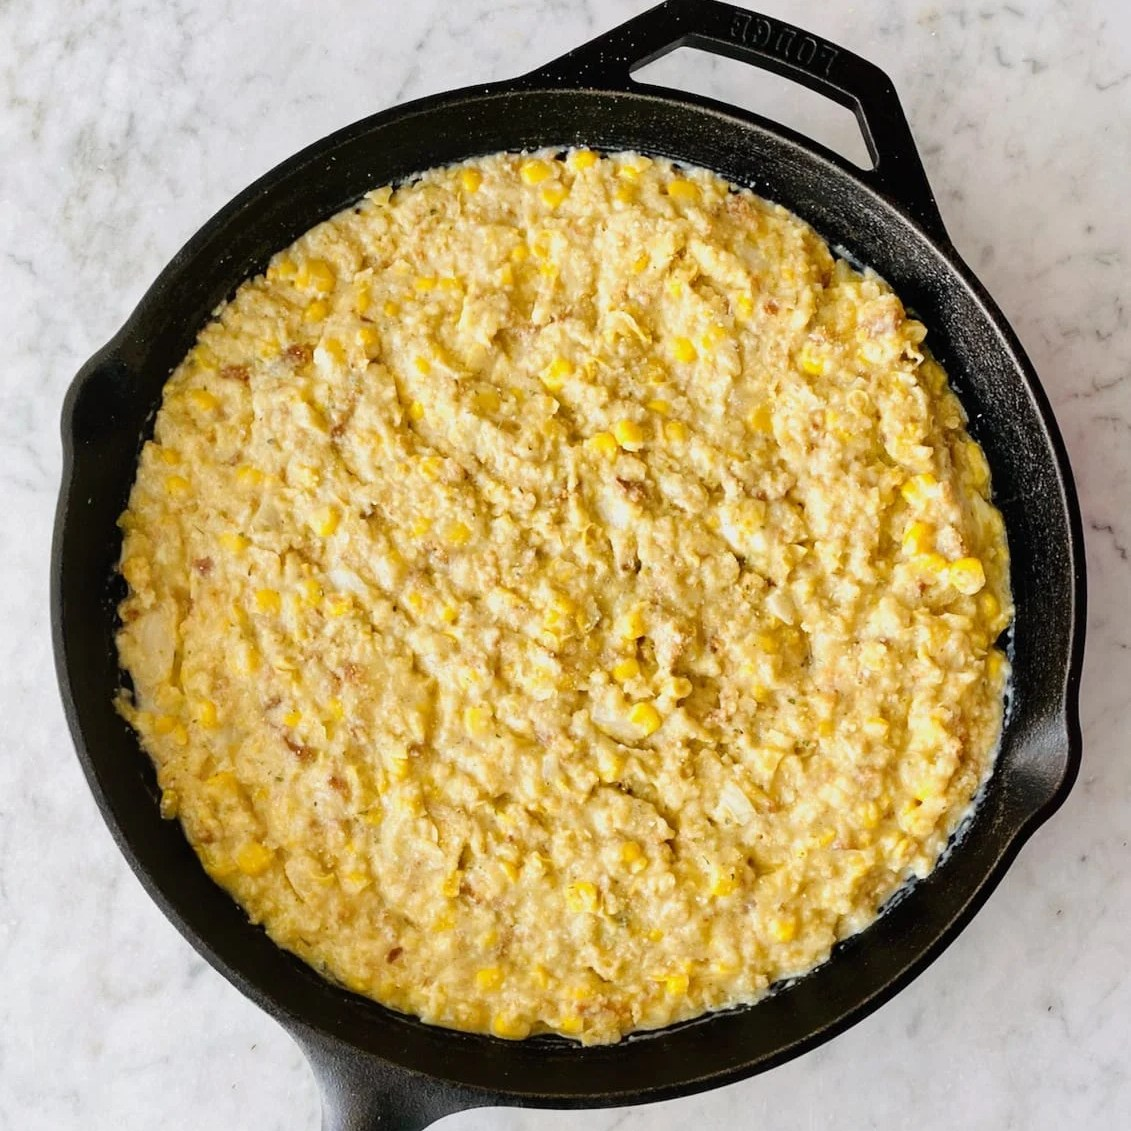 corn casserole in a cast iron skillet ready to go into the oven